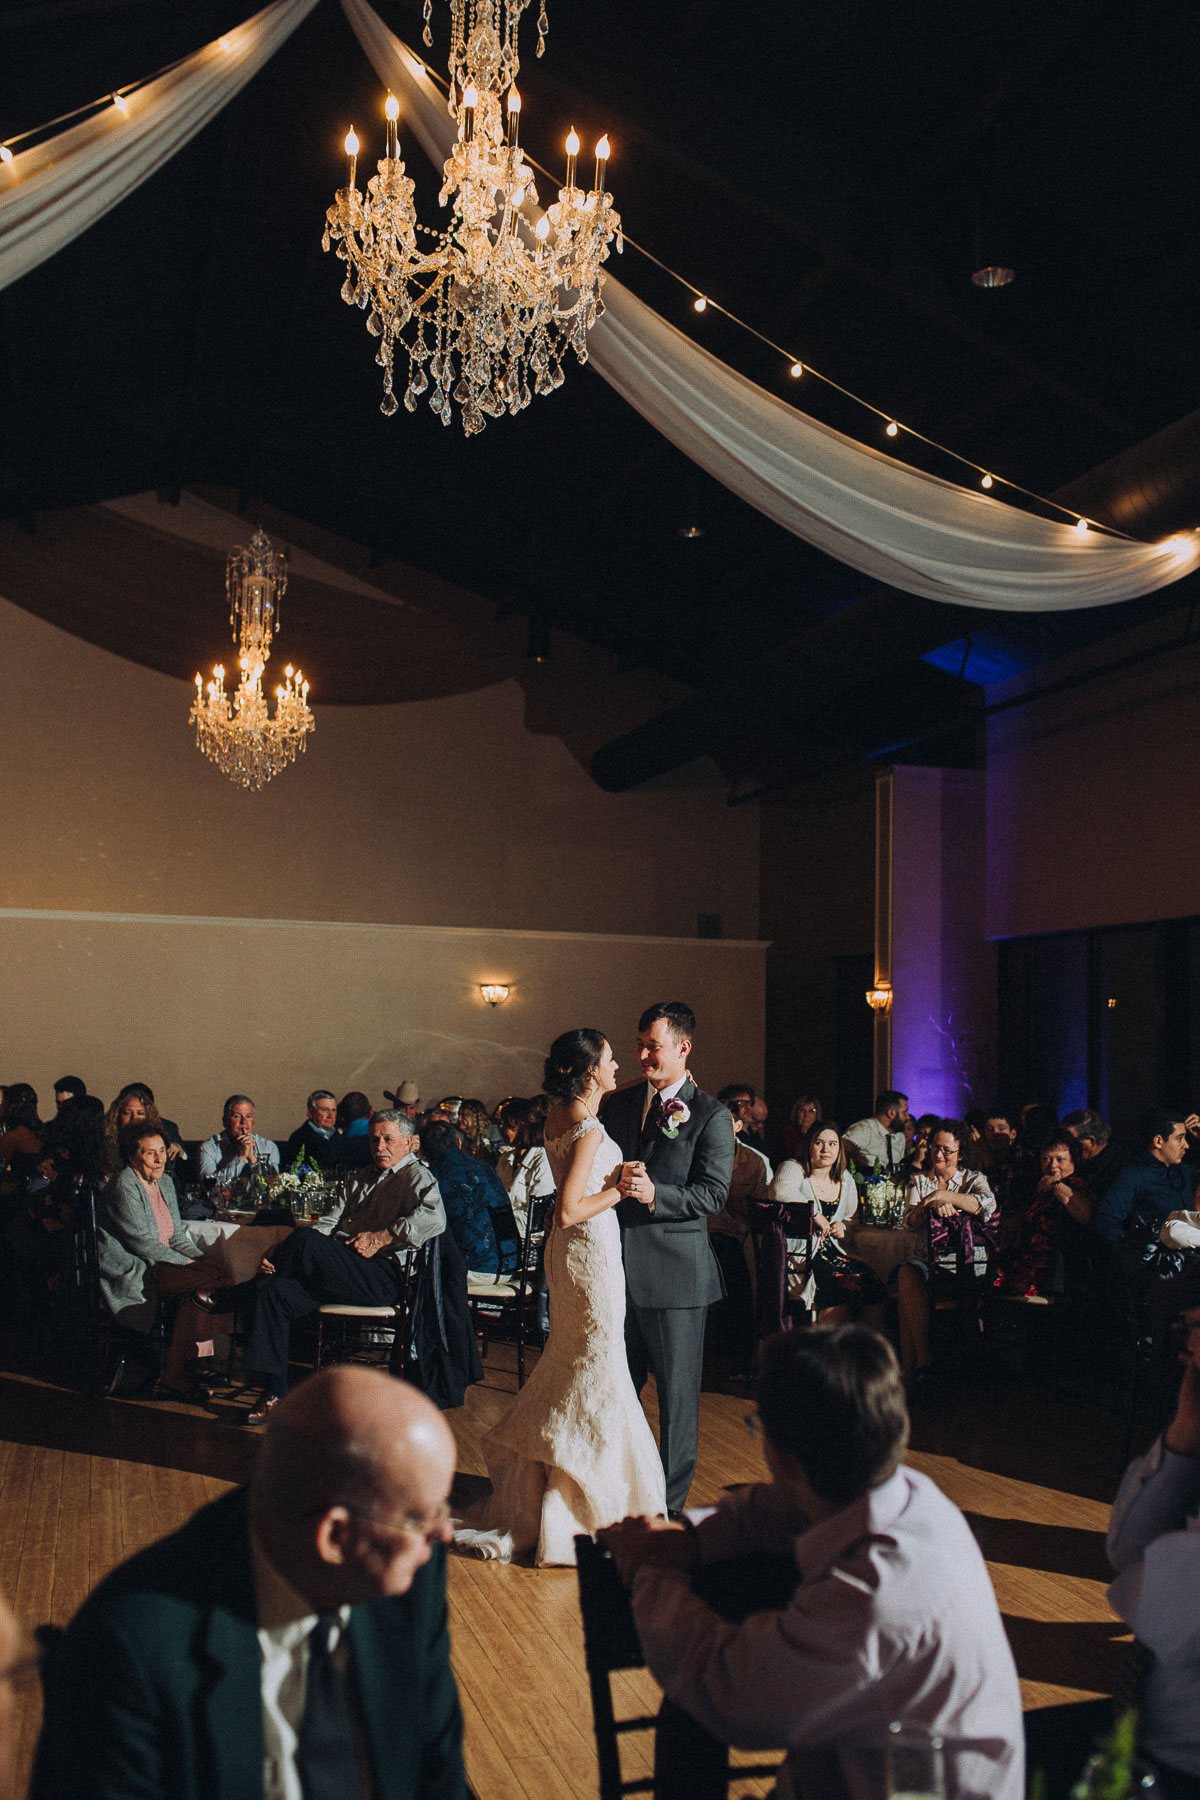 Bride and groom dance underneath chandelier at the Wedgewood Black Forest